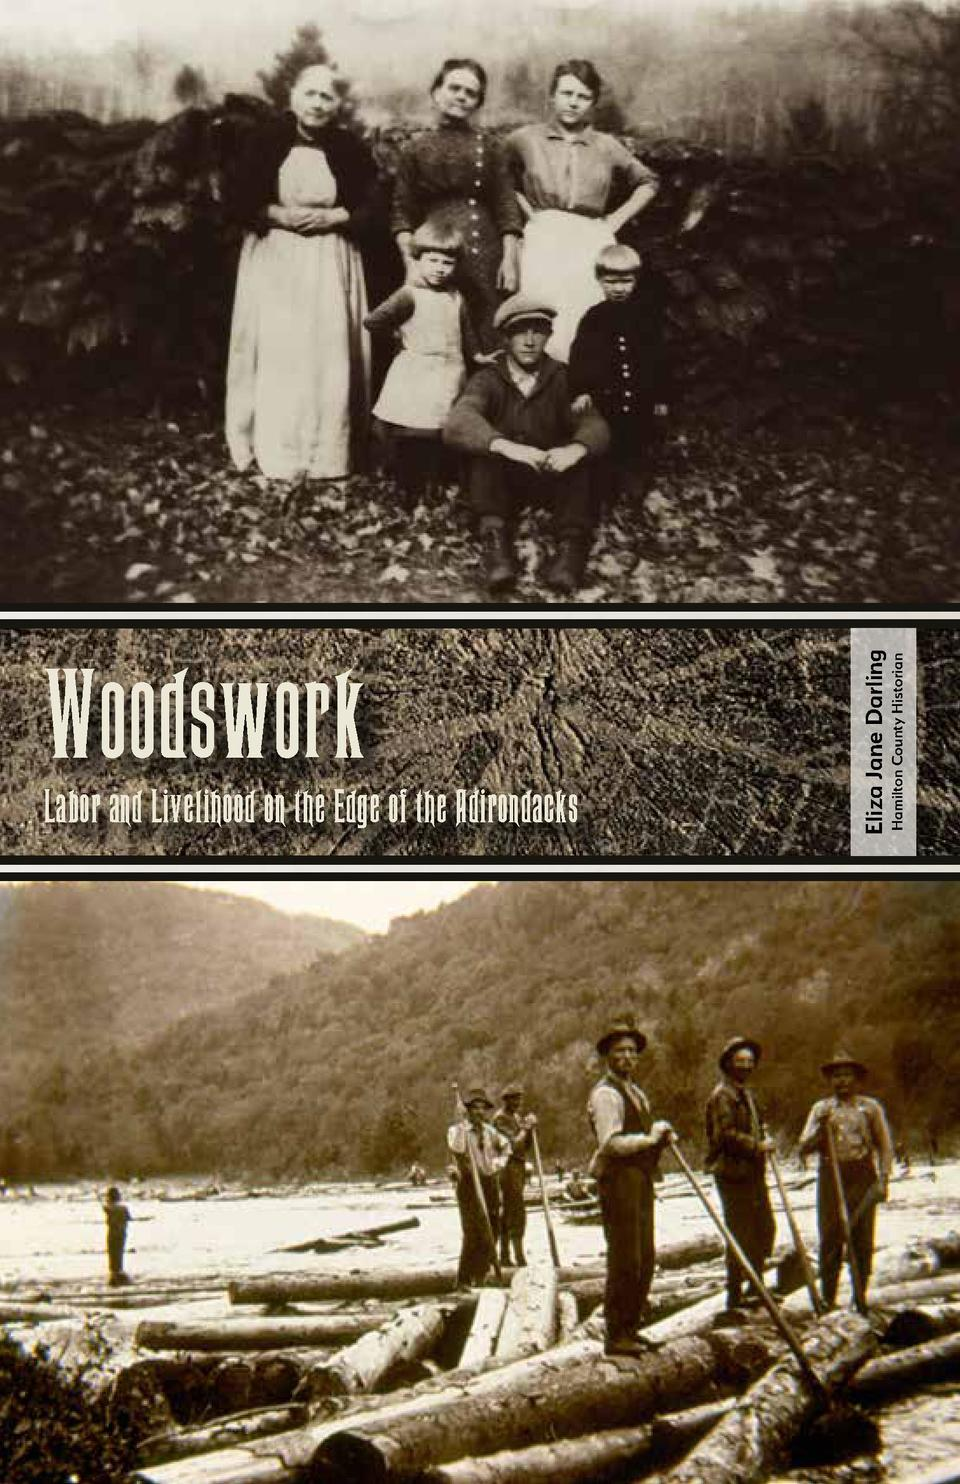 1  Hamilton County Historian  Labor and Livelihood on the Edge of the Adirondacks  Eliza Jane Darling  Woodswork